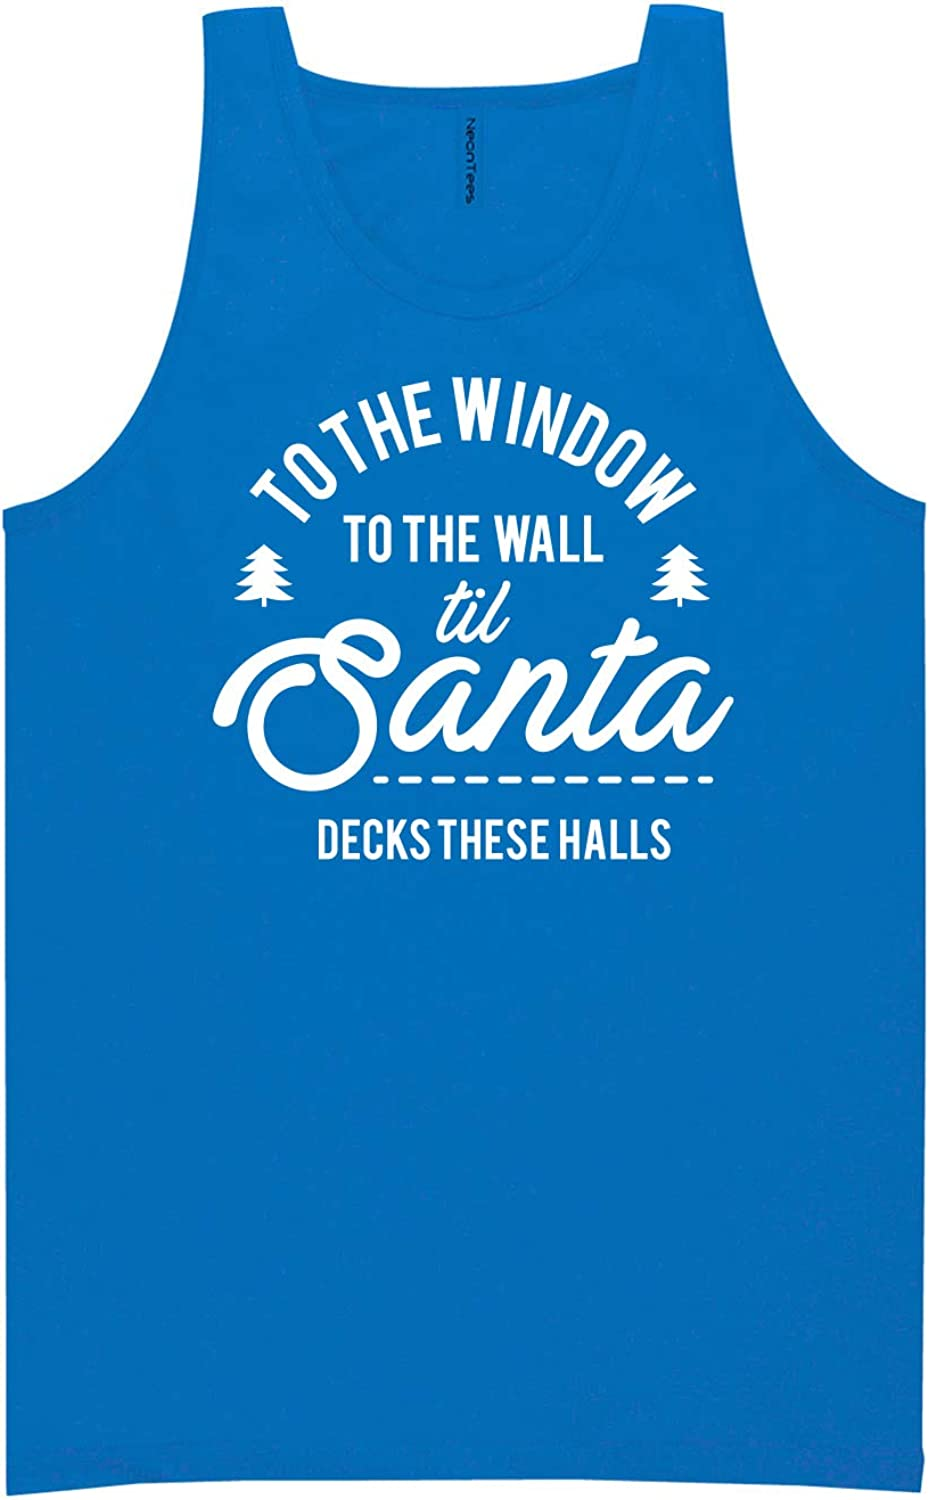 to The Window to The Wall Neon Blue Tank Top - XX-Large